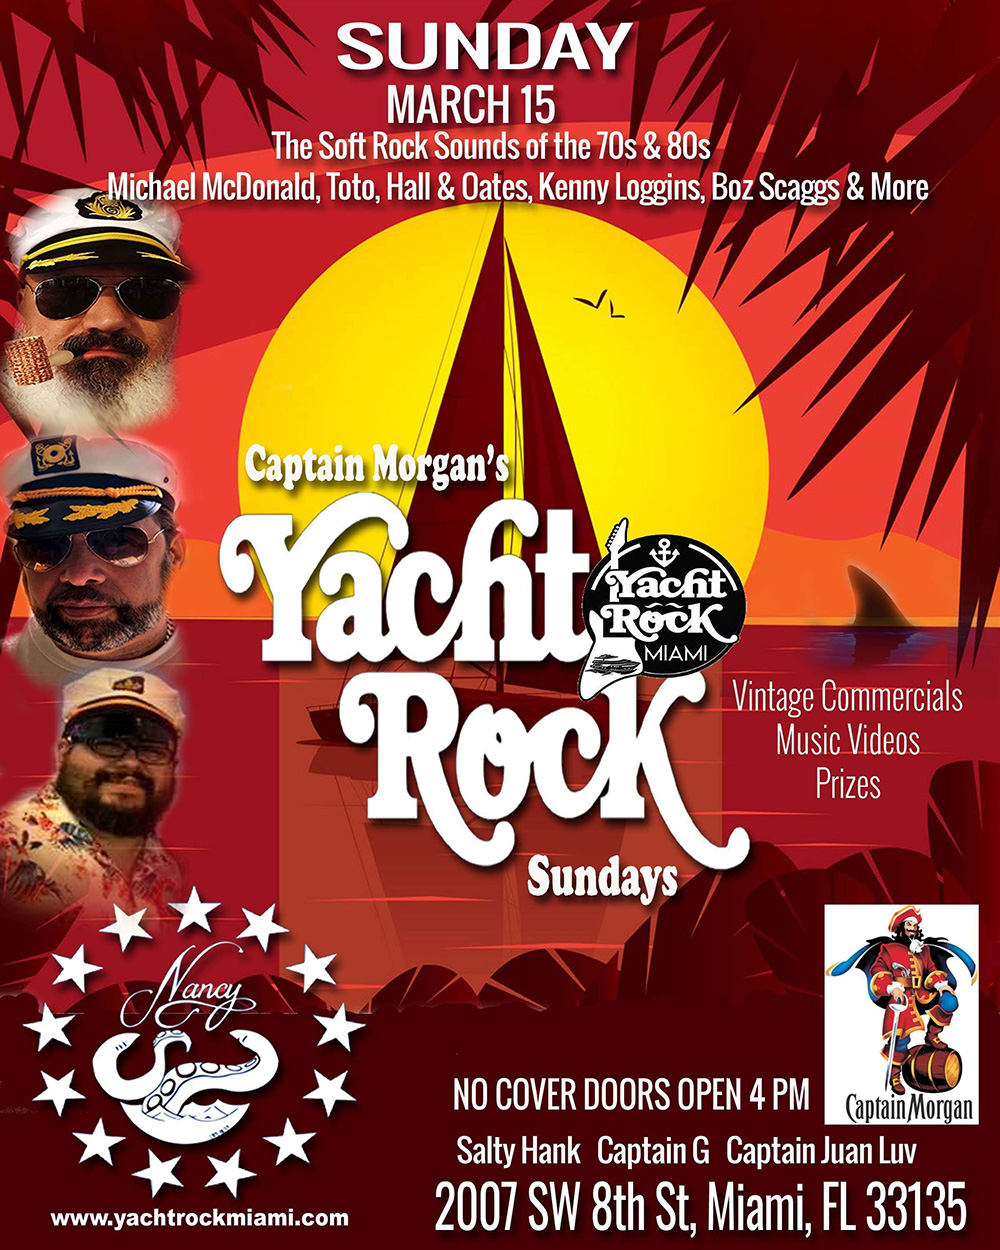 Captain Morgan's Yacht Rock Sundays at Bar Nancy!